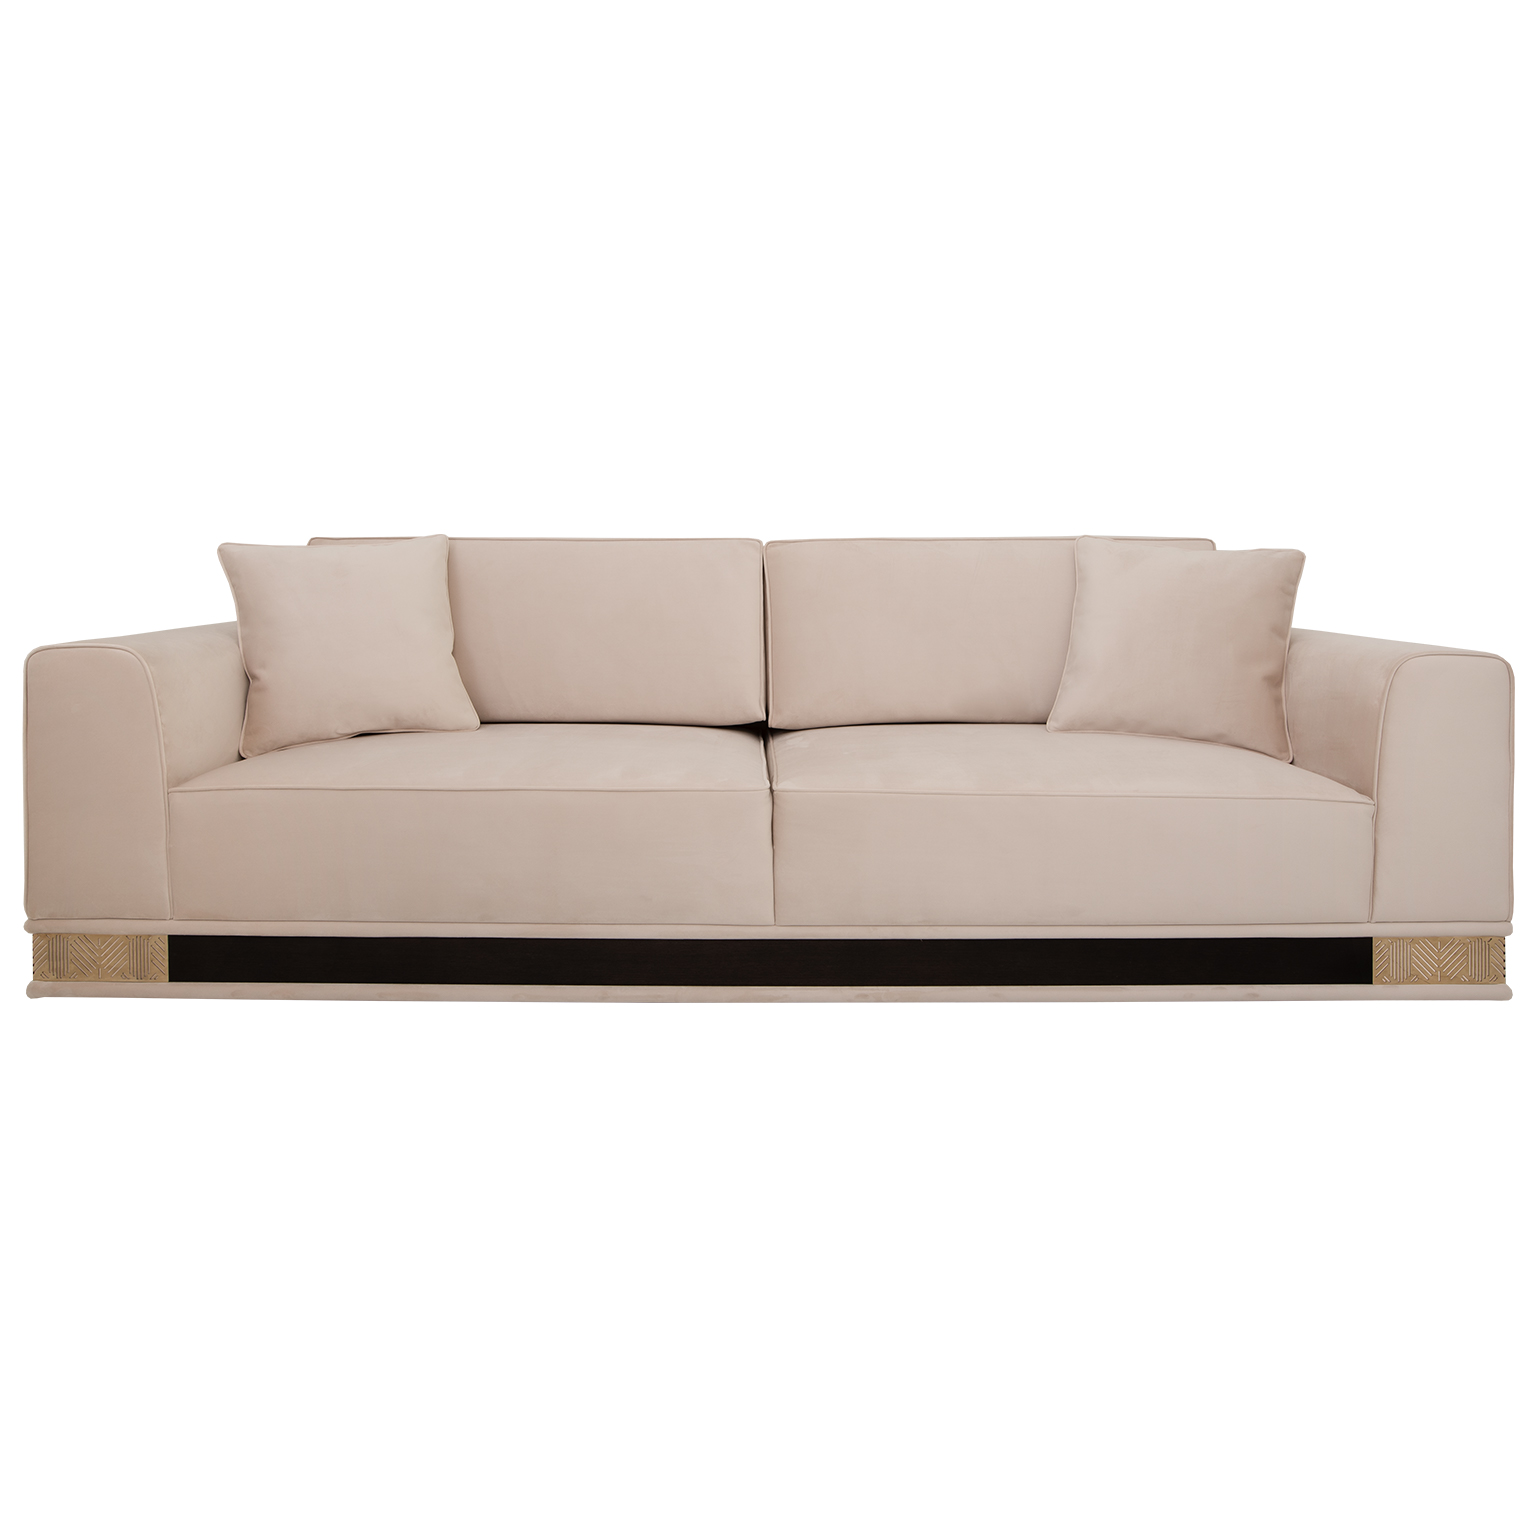 Rectangular sofa with base decorated in light gloss Macassar Ebony and brass wrapping around the bottom